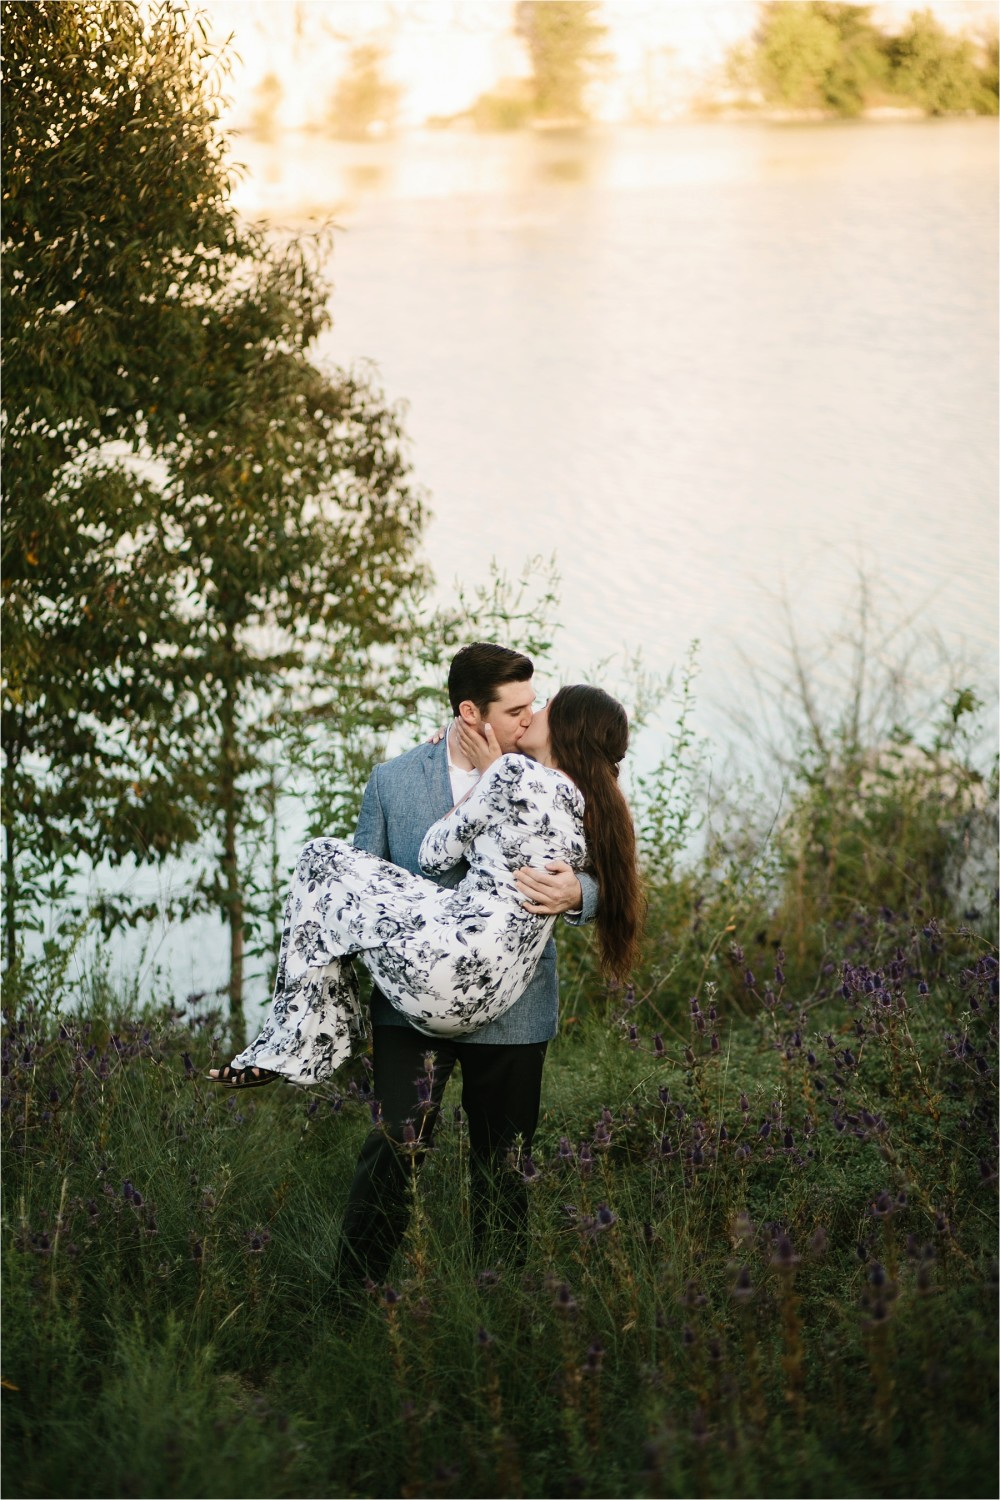 an-intimate-sunrise-session-by-north-texas-wedding-photographer-rachel-meagan-photography-_-39